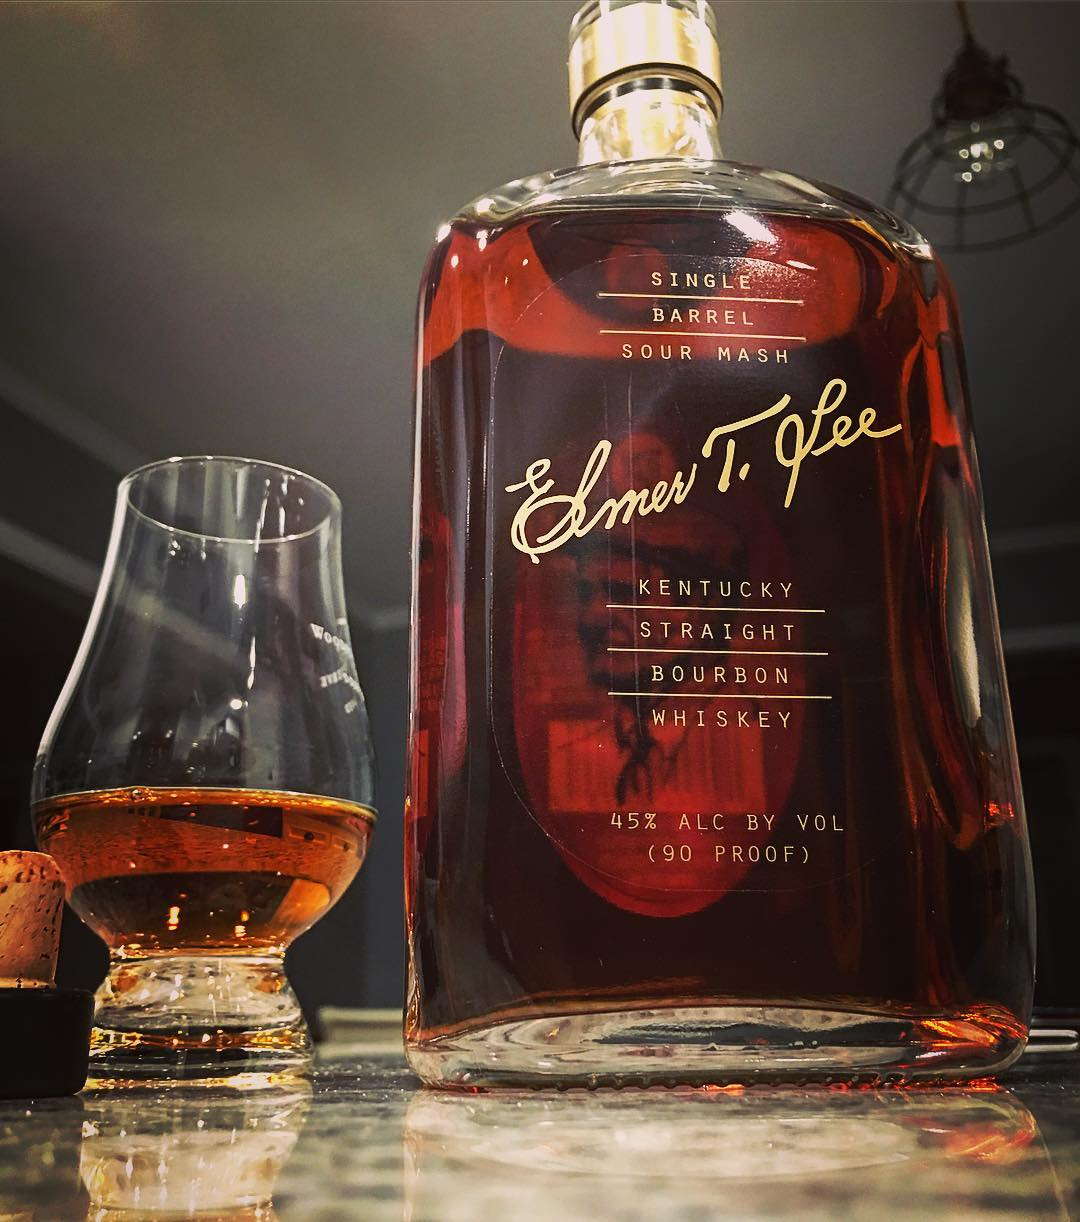 Elmer T. Lee in the house! This bourbon is one of the many fantastic offerings from the Buffalo Trace Distillery. While Elmer T. Lee, one of the past master distillers, sadly has passed on, they still select this single barrel release once a year. The 2016 choice won a gold this year. w00t!  Syrupy oranges, some Christmas spice, and bready notes on the nose. The taste brings some darker flavored that I really wasn't expecting, but lead into one of the most beautiful finishes I've tasted recently! A little drop of water also unlocks some new flavors. Way to go team!  @buffalotracedistillery @buffalotrace